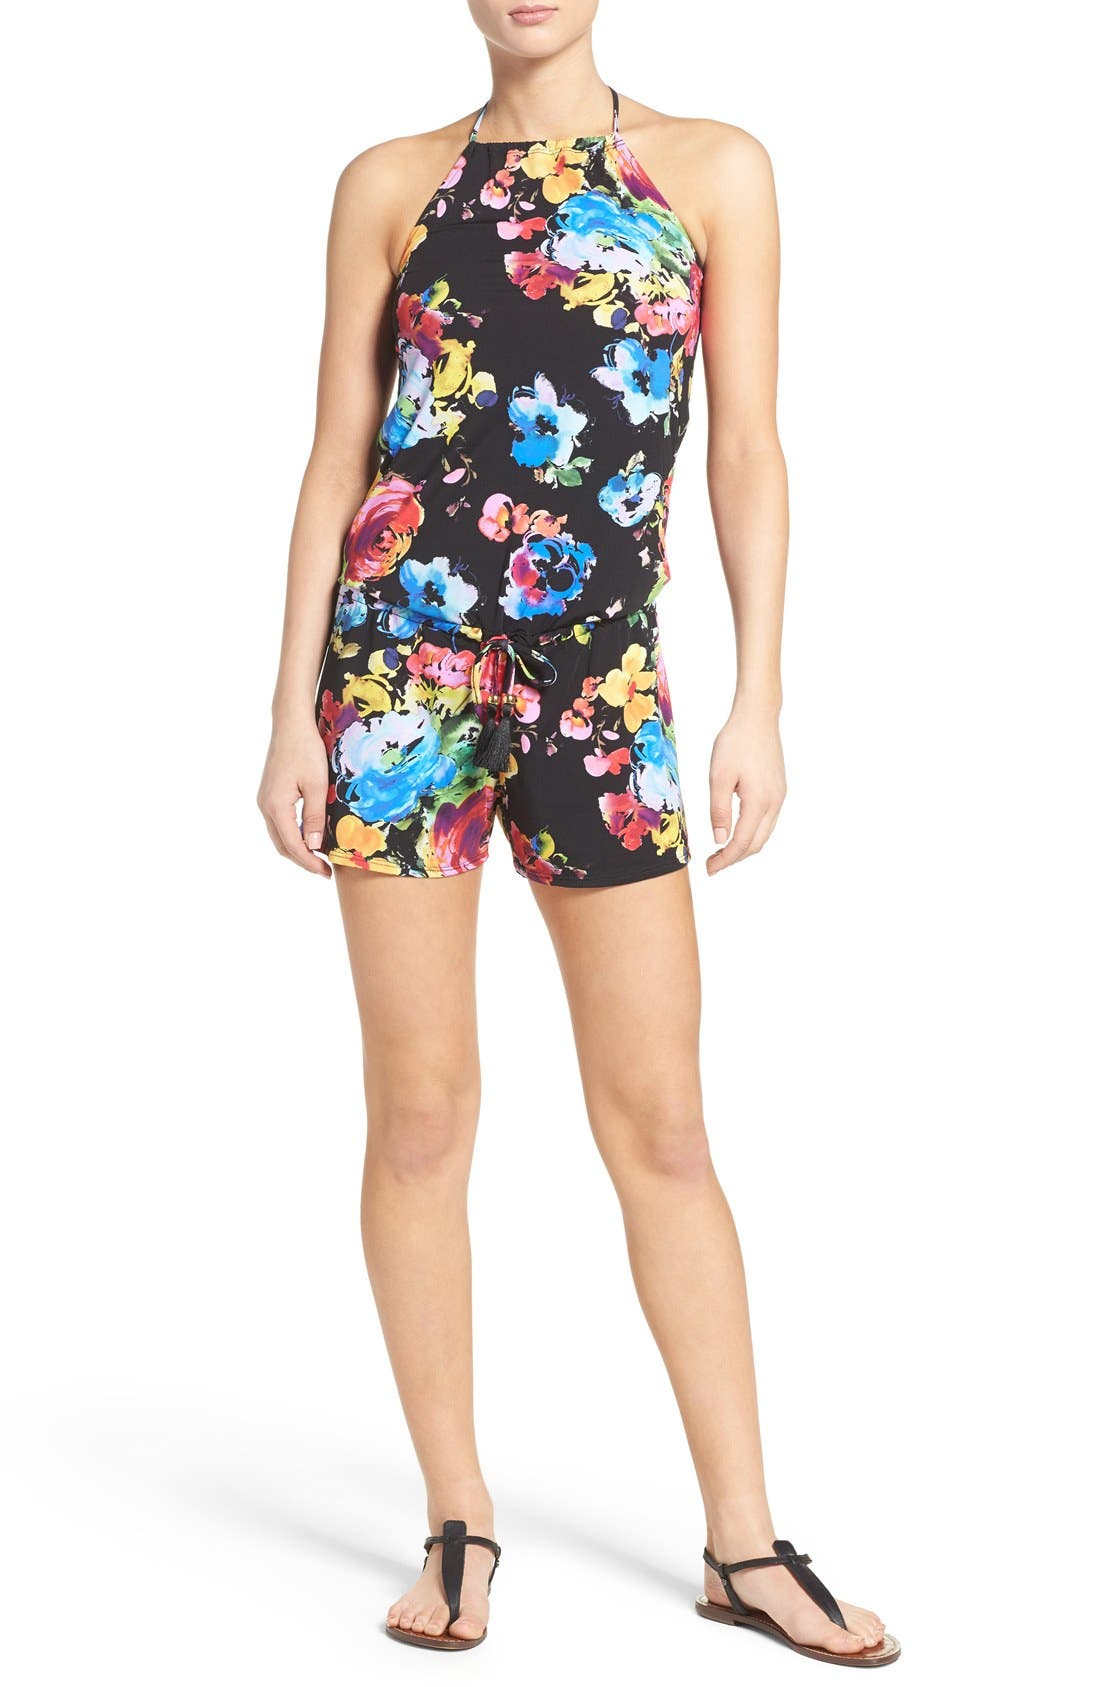 PILYQ Floral Halter Cover-Up Romper